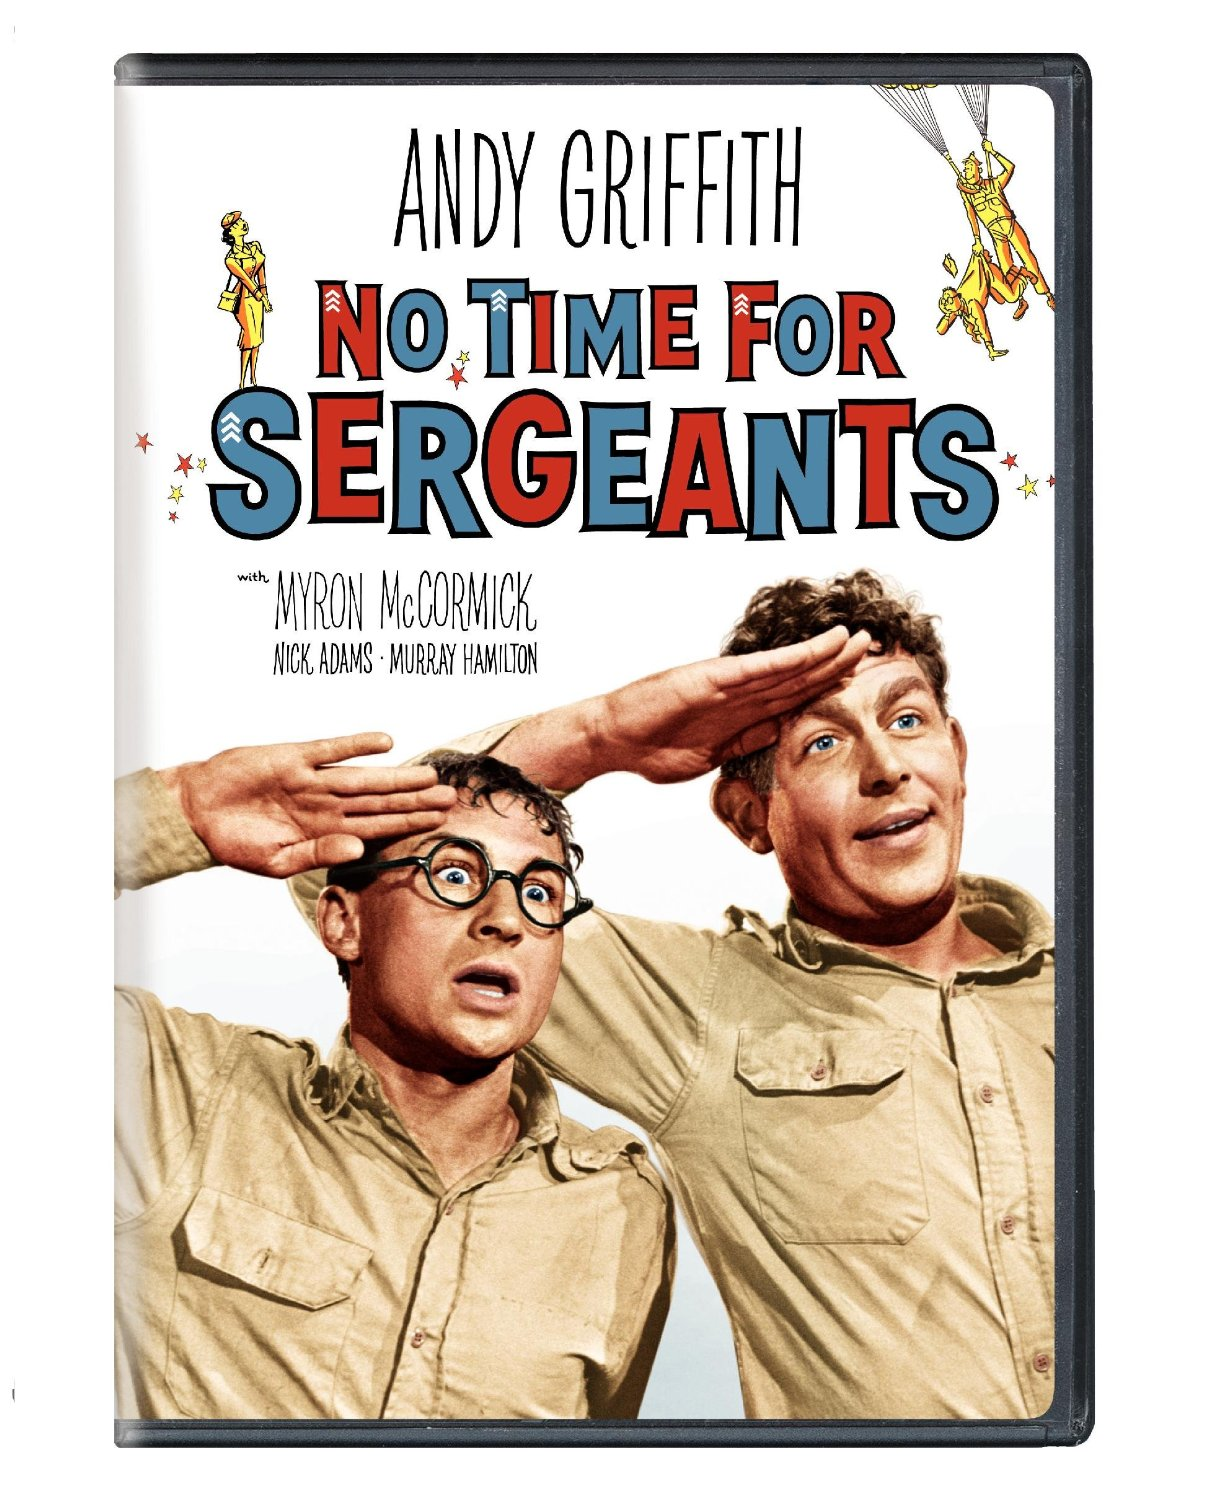 No Time for Sergeants, starring Andy Griffith